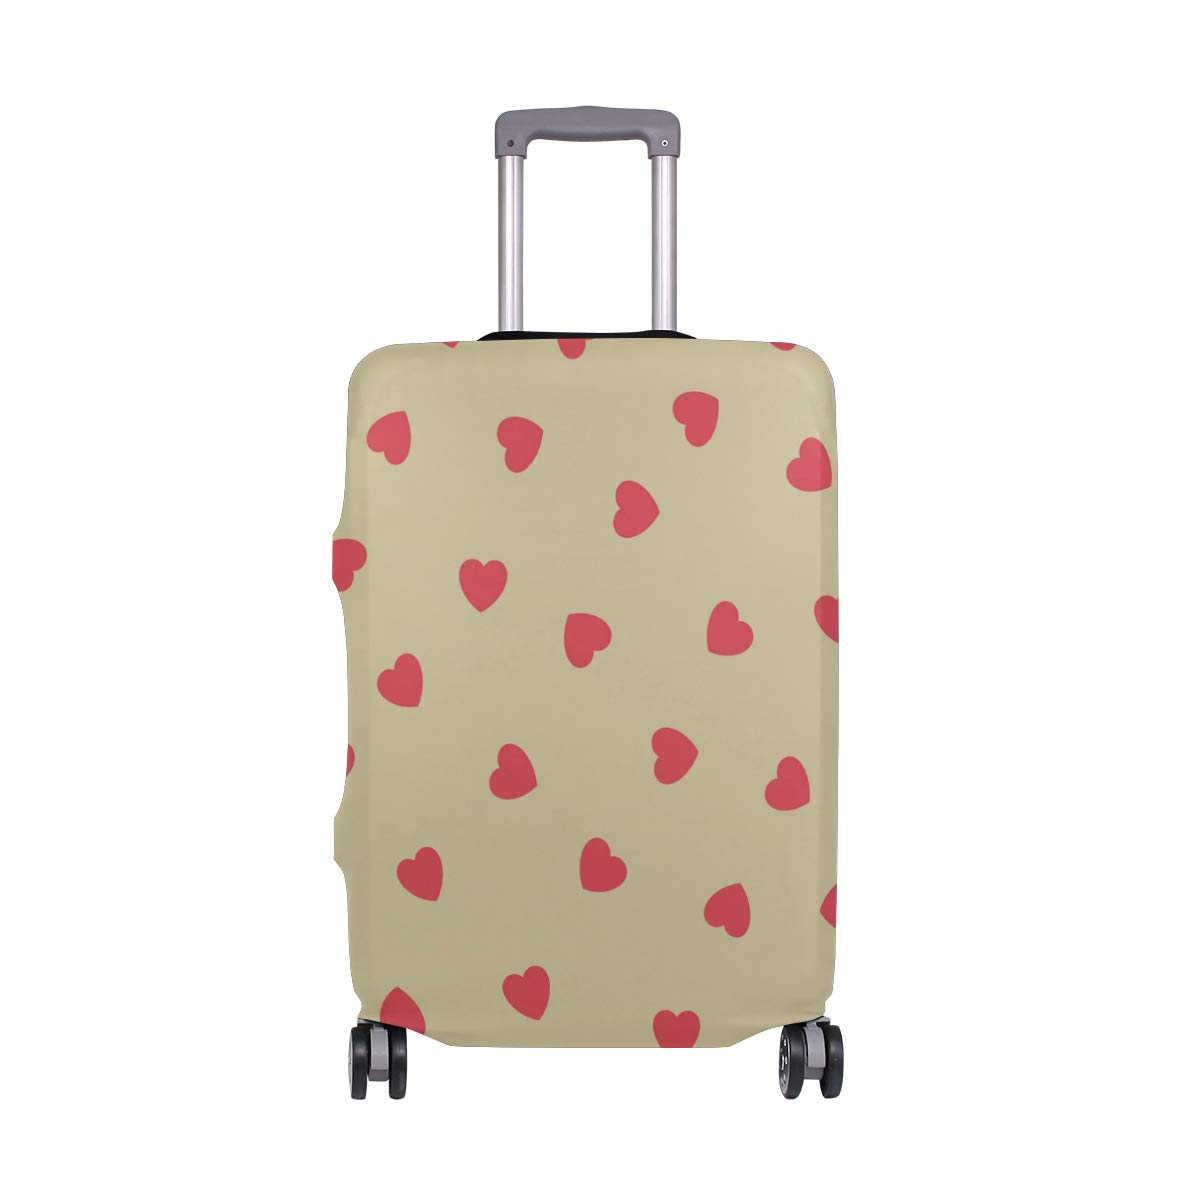 Baggage Covers Red Love Heart Pattern Romantic Washable Protective Case